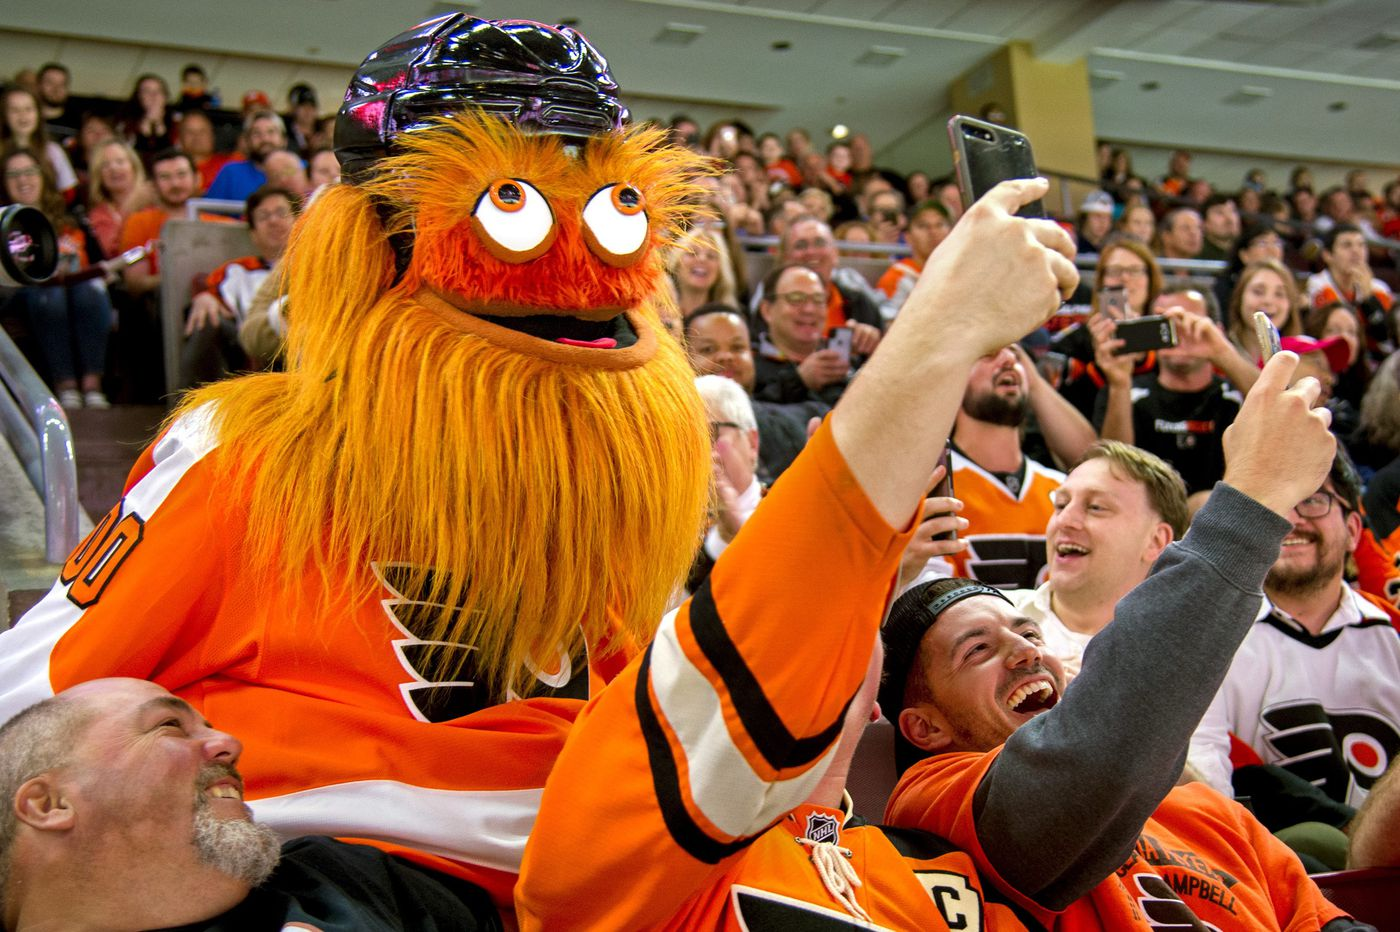 The nitty-Gritty behind the birth of the Flyers' mascot